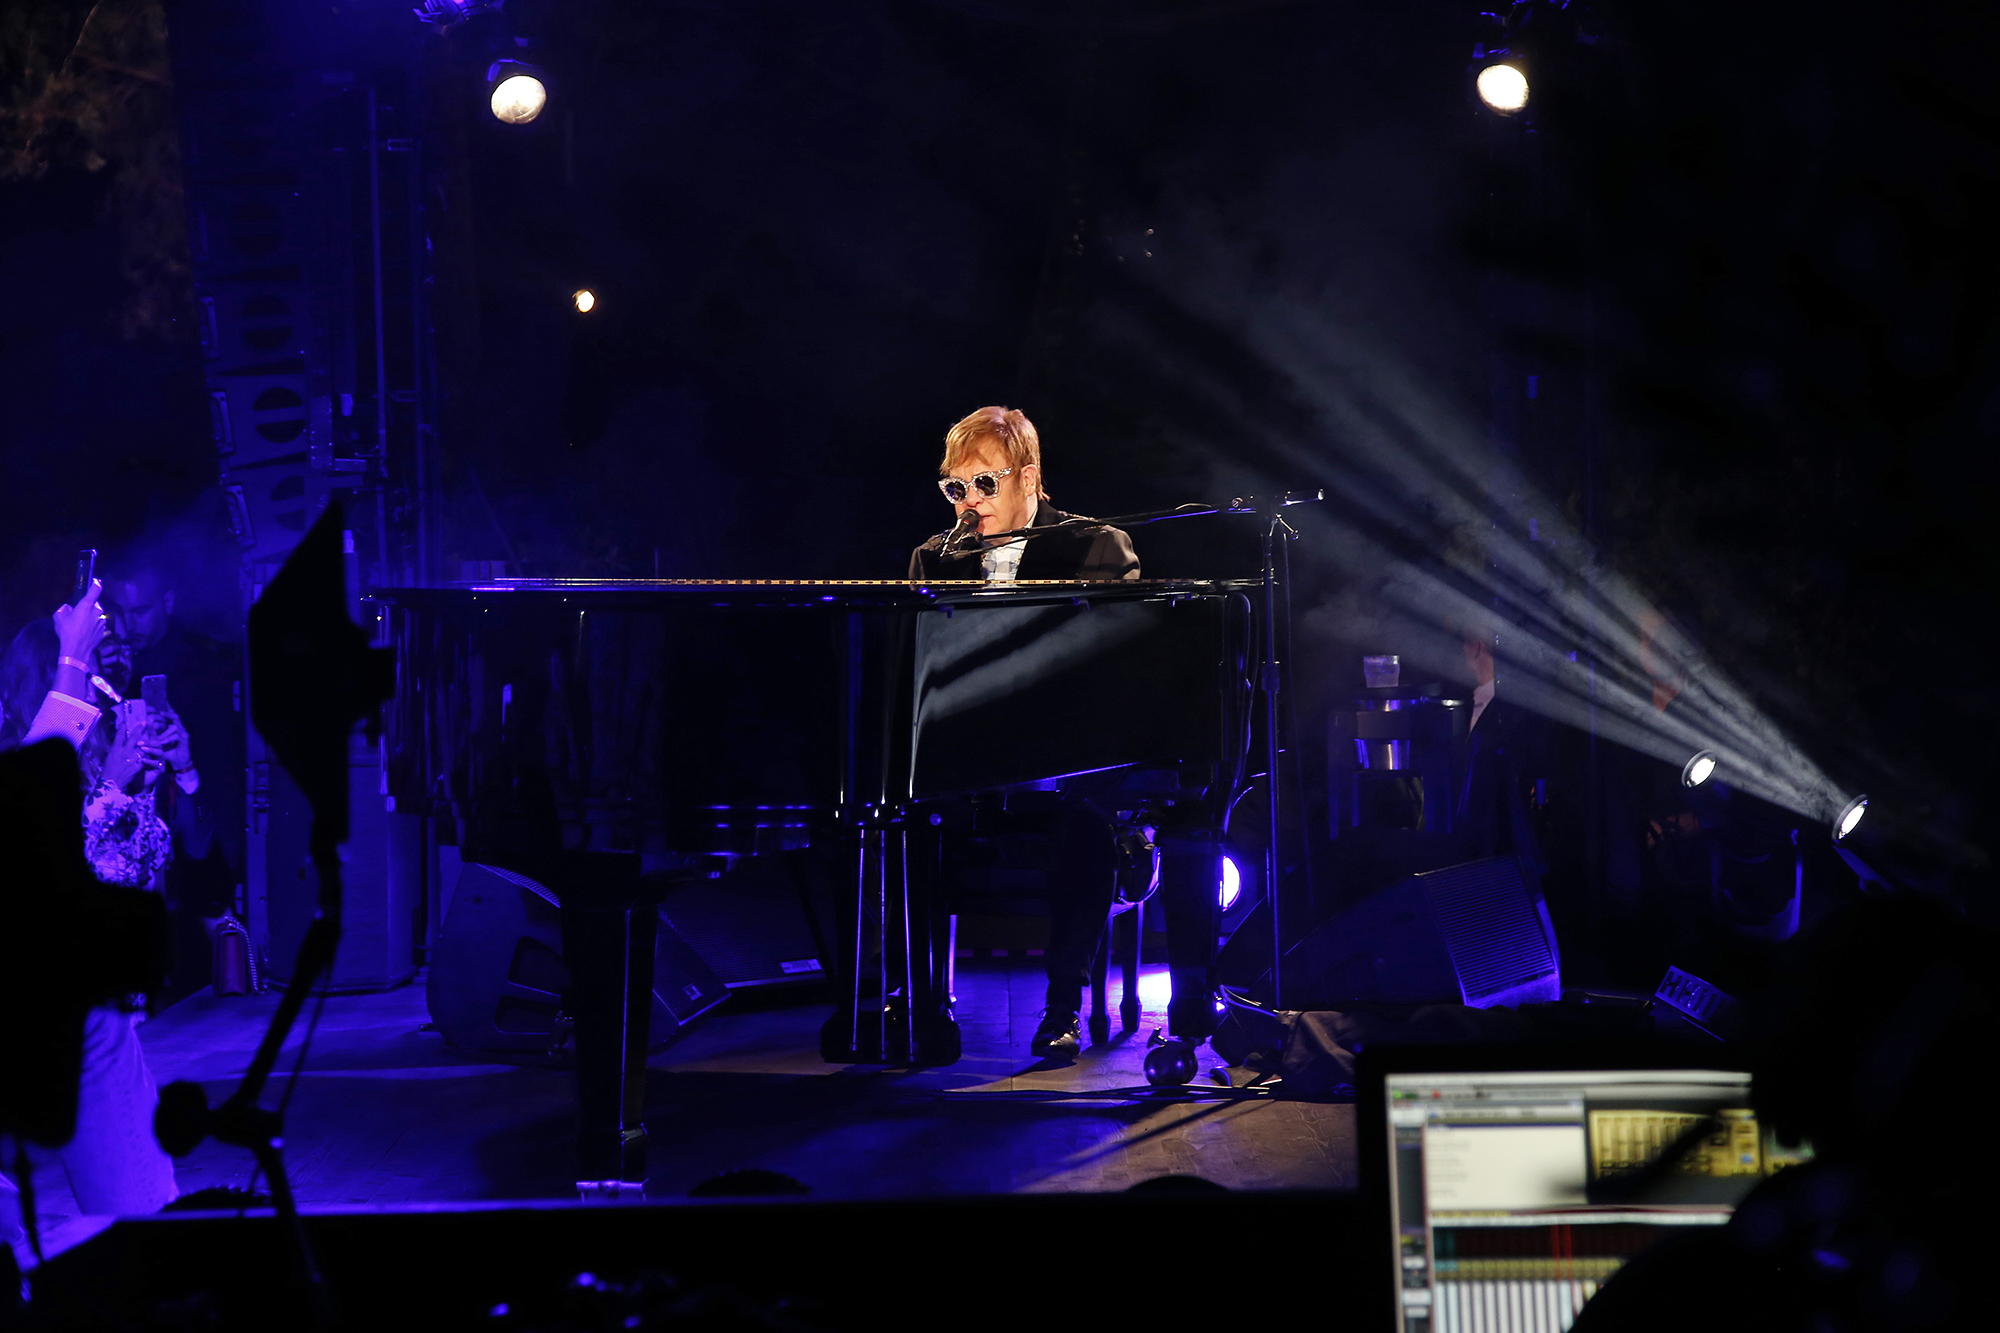 Elton John performs at Gucci's Cruise 2019 show in Arles, France